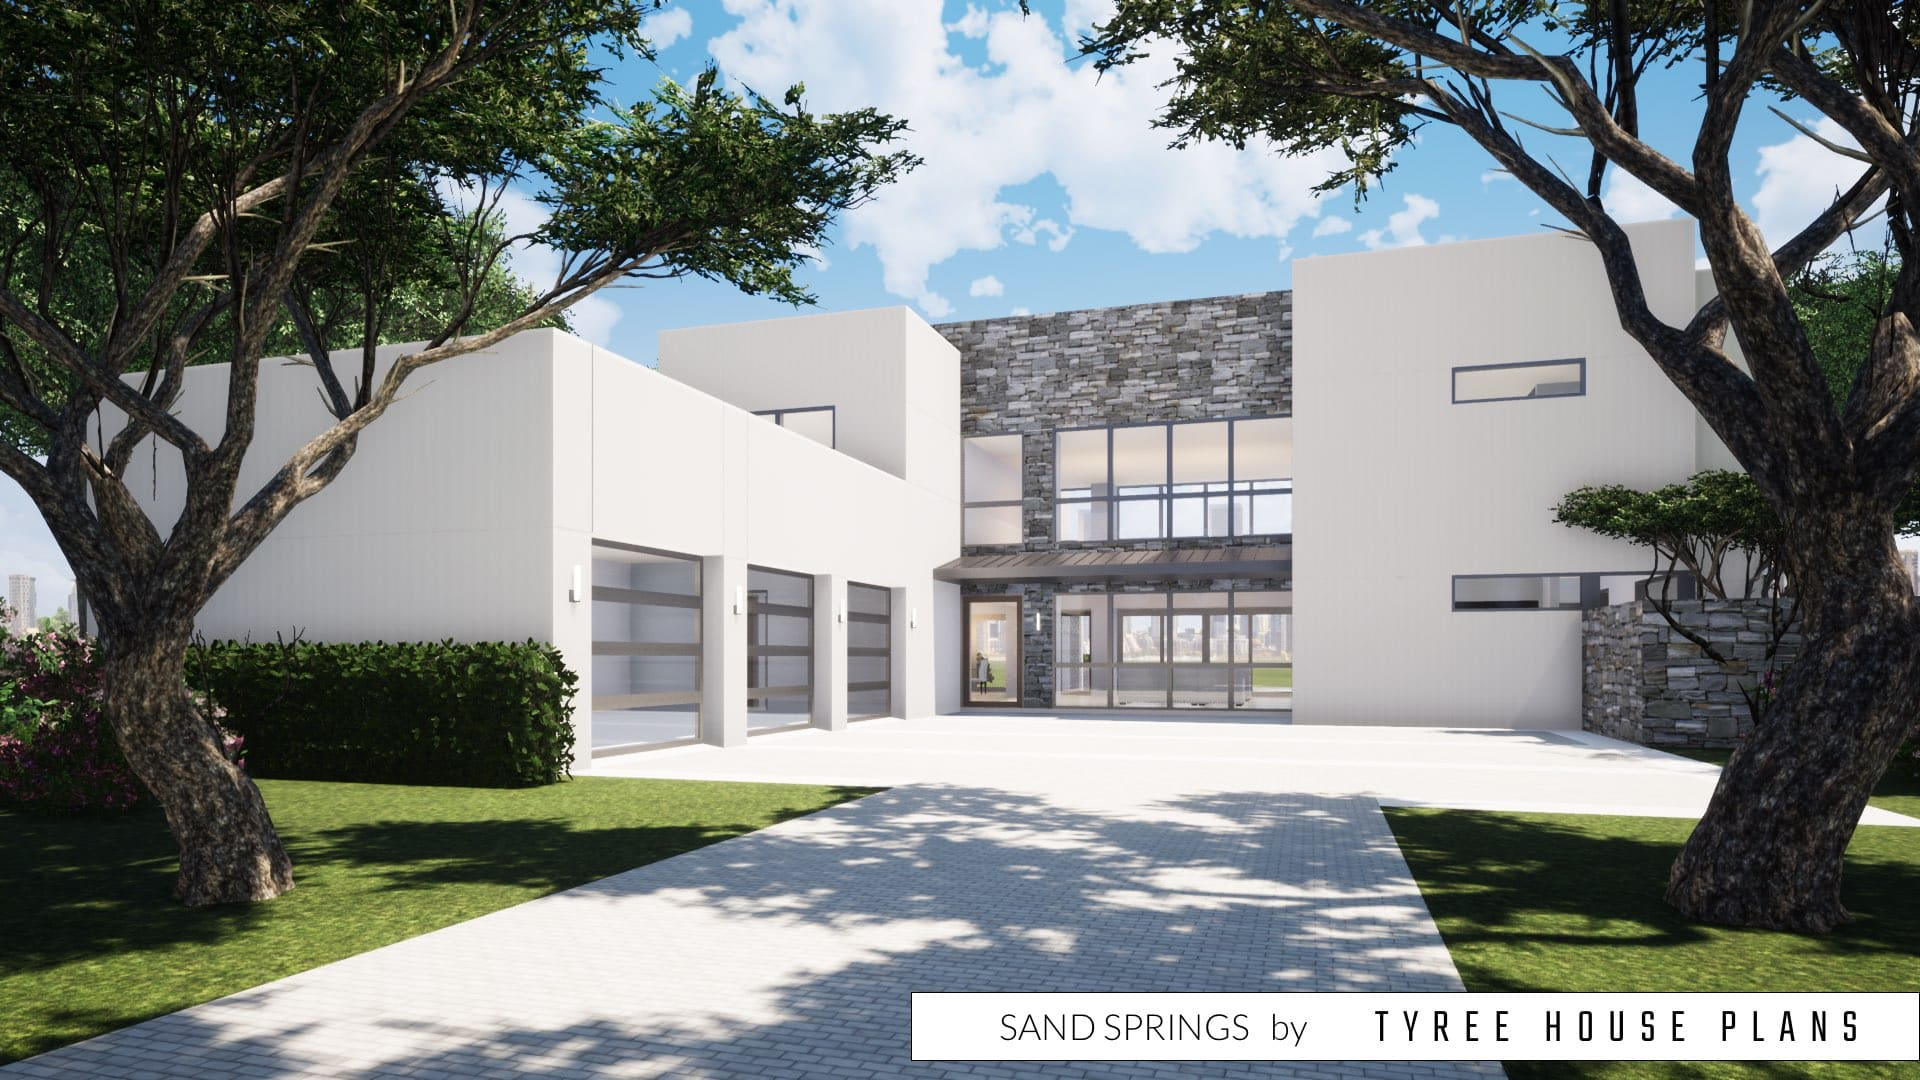 Sand Springs House Plan by Tyree House Plans